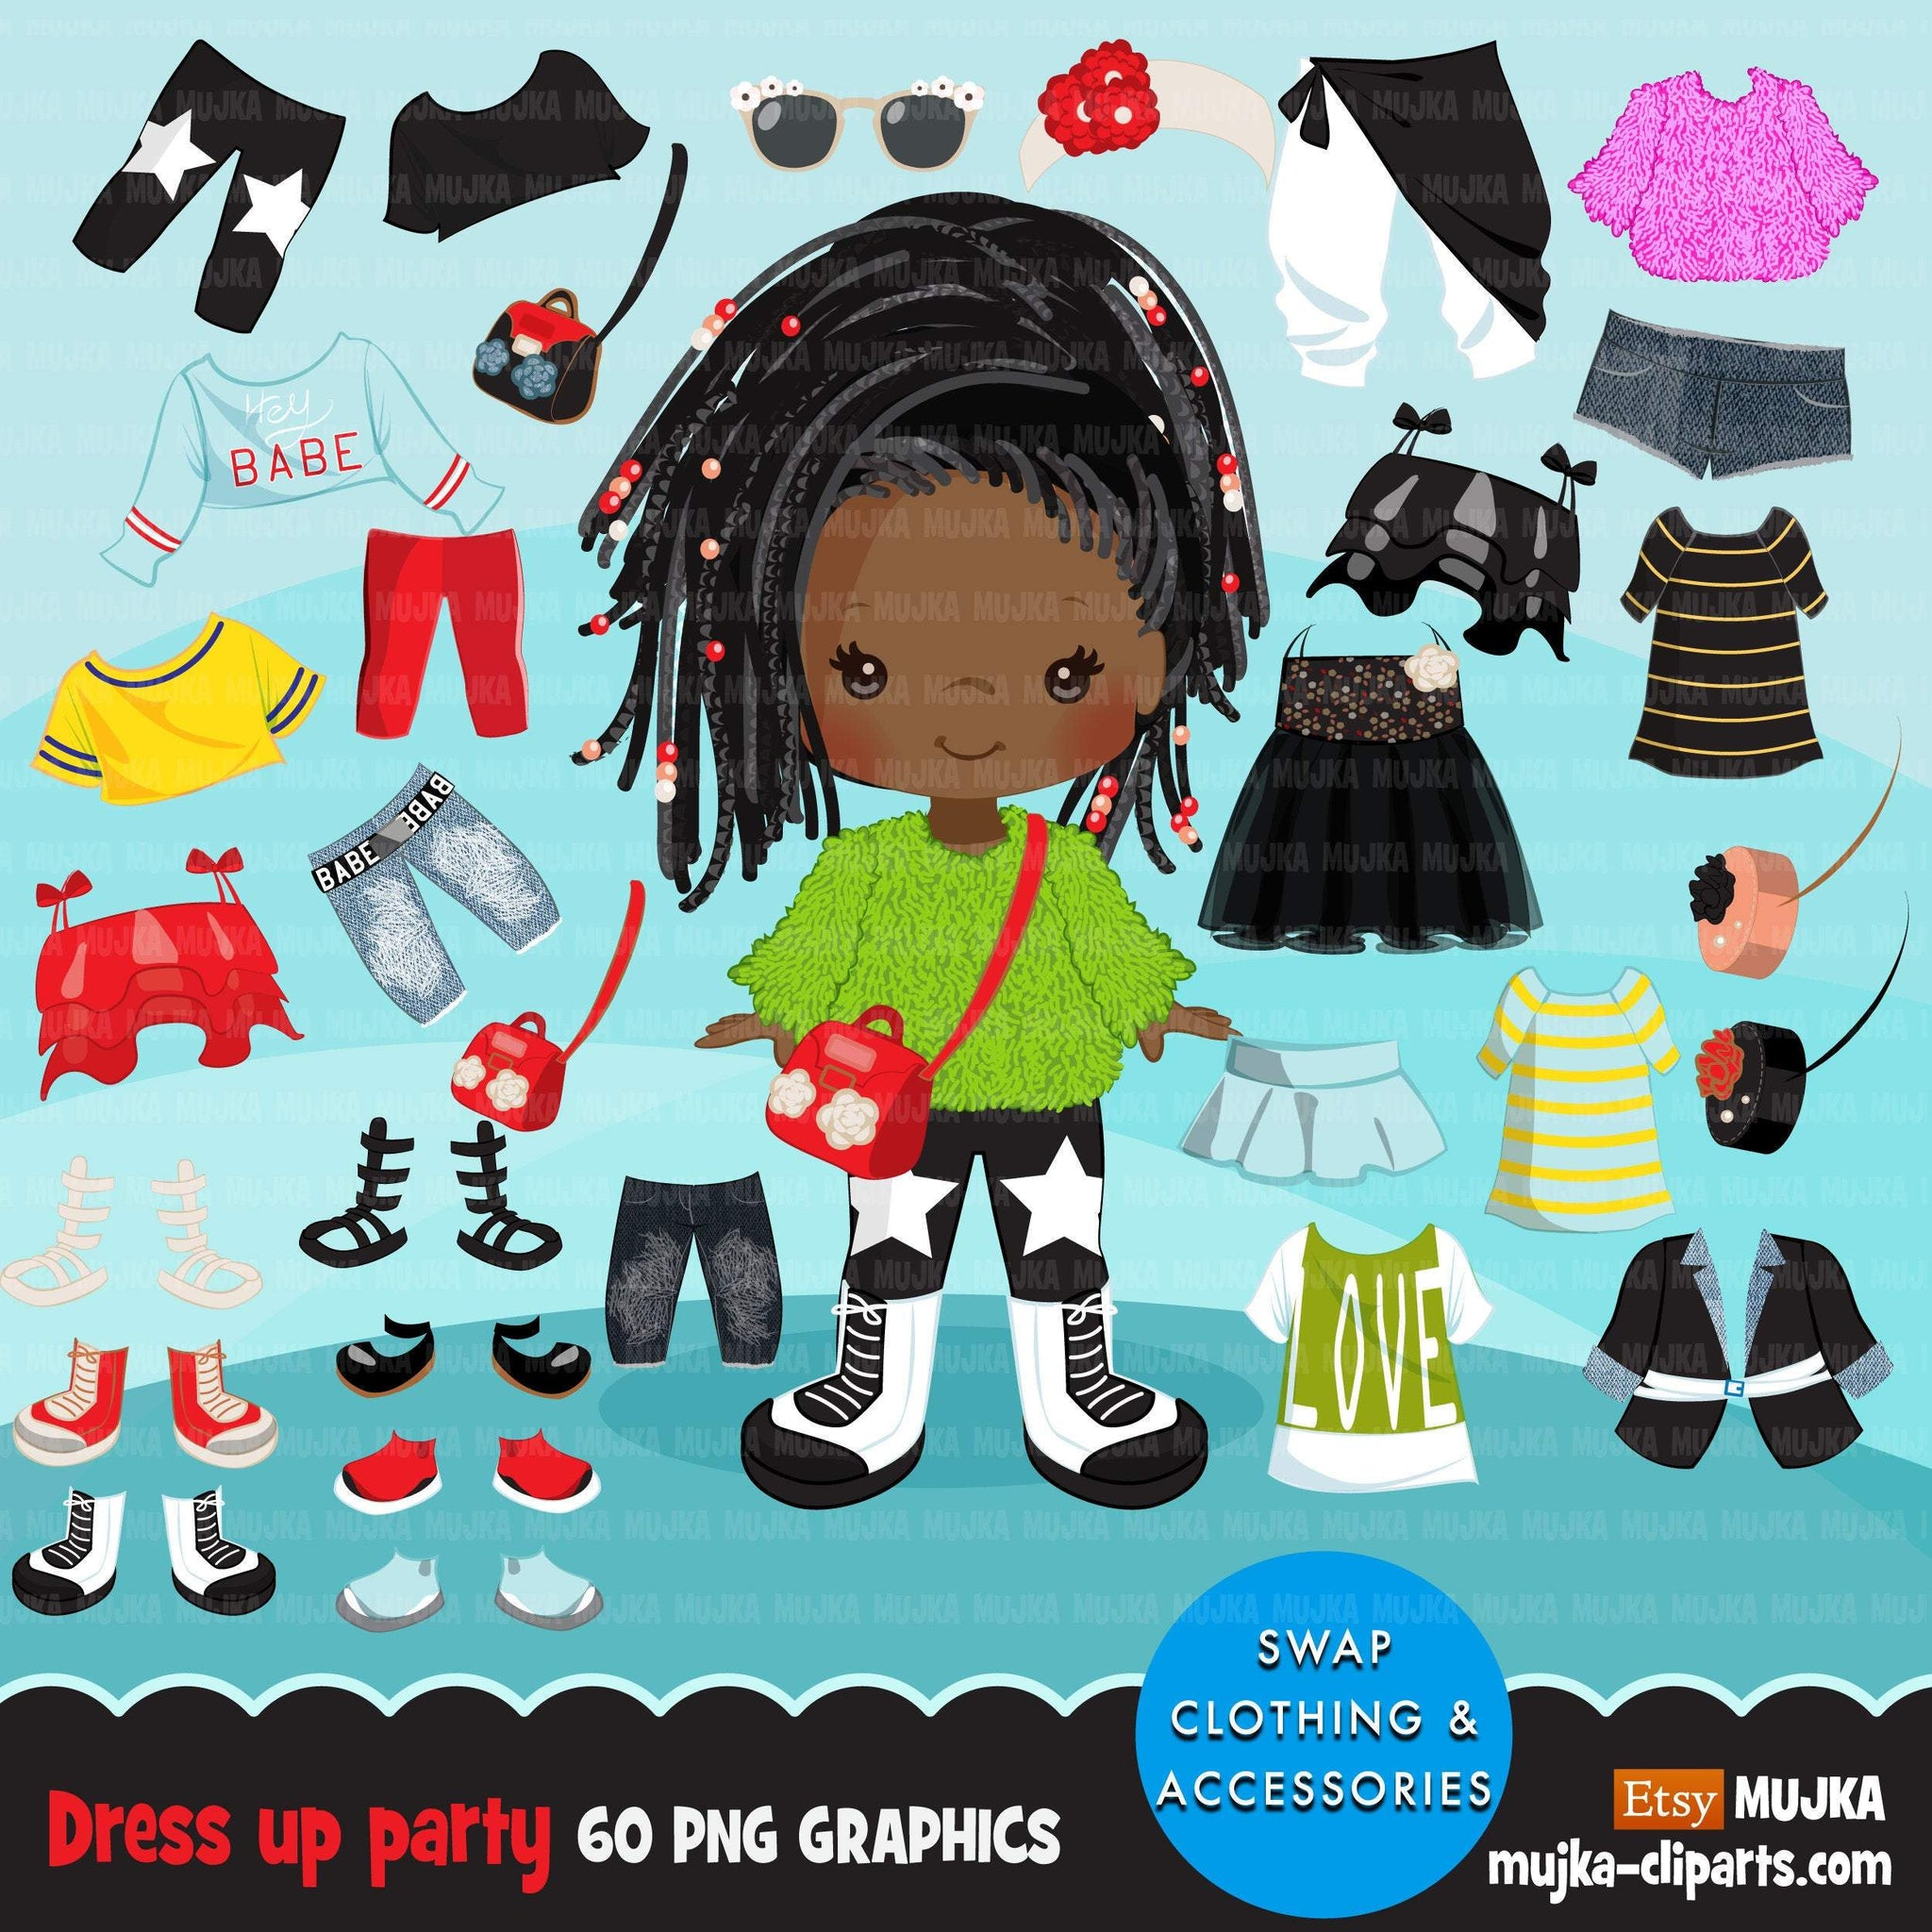 Paper doll clipart, Dressing Party Graphics, Cute Characters, black girls fashion, outfits png clip art